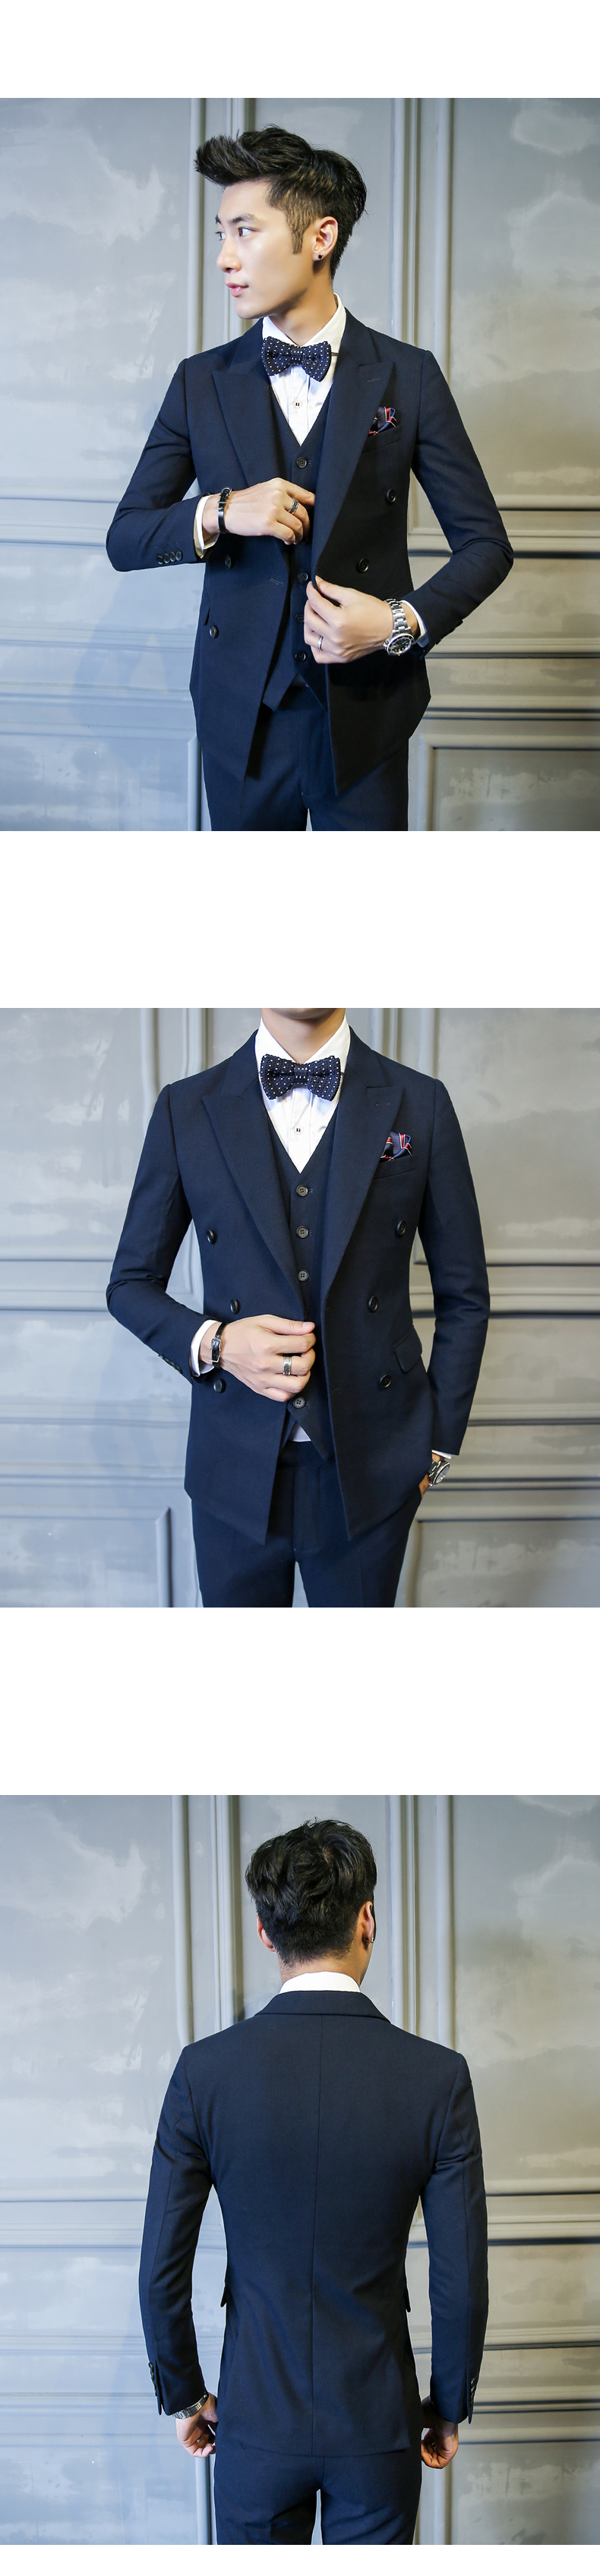 Men Slim Fit Double Breasted Suit 3 Pieces Male Custom Business Dress Wedding Suits for Men Blazer Costume Homme